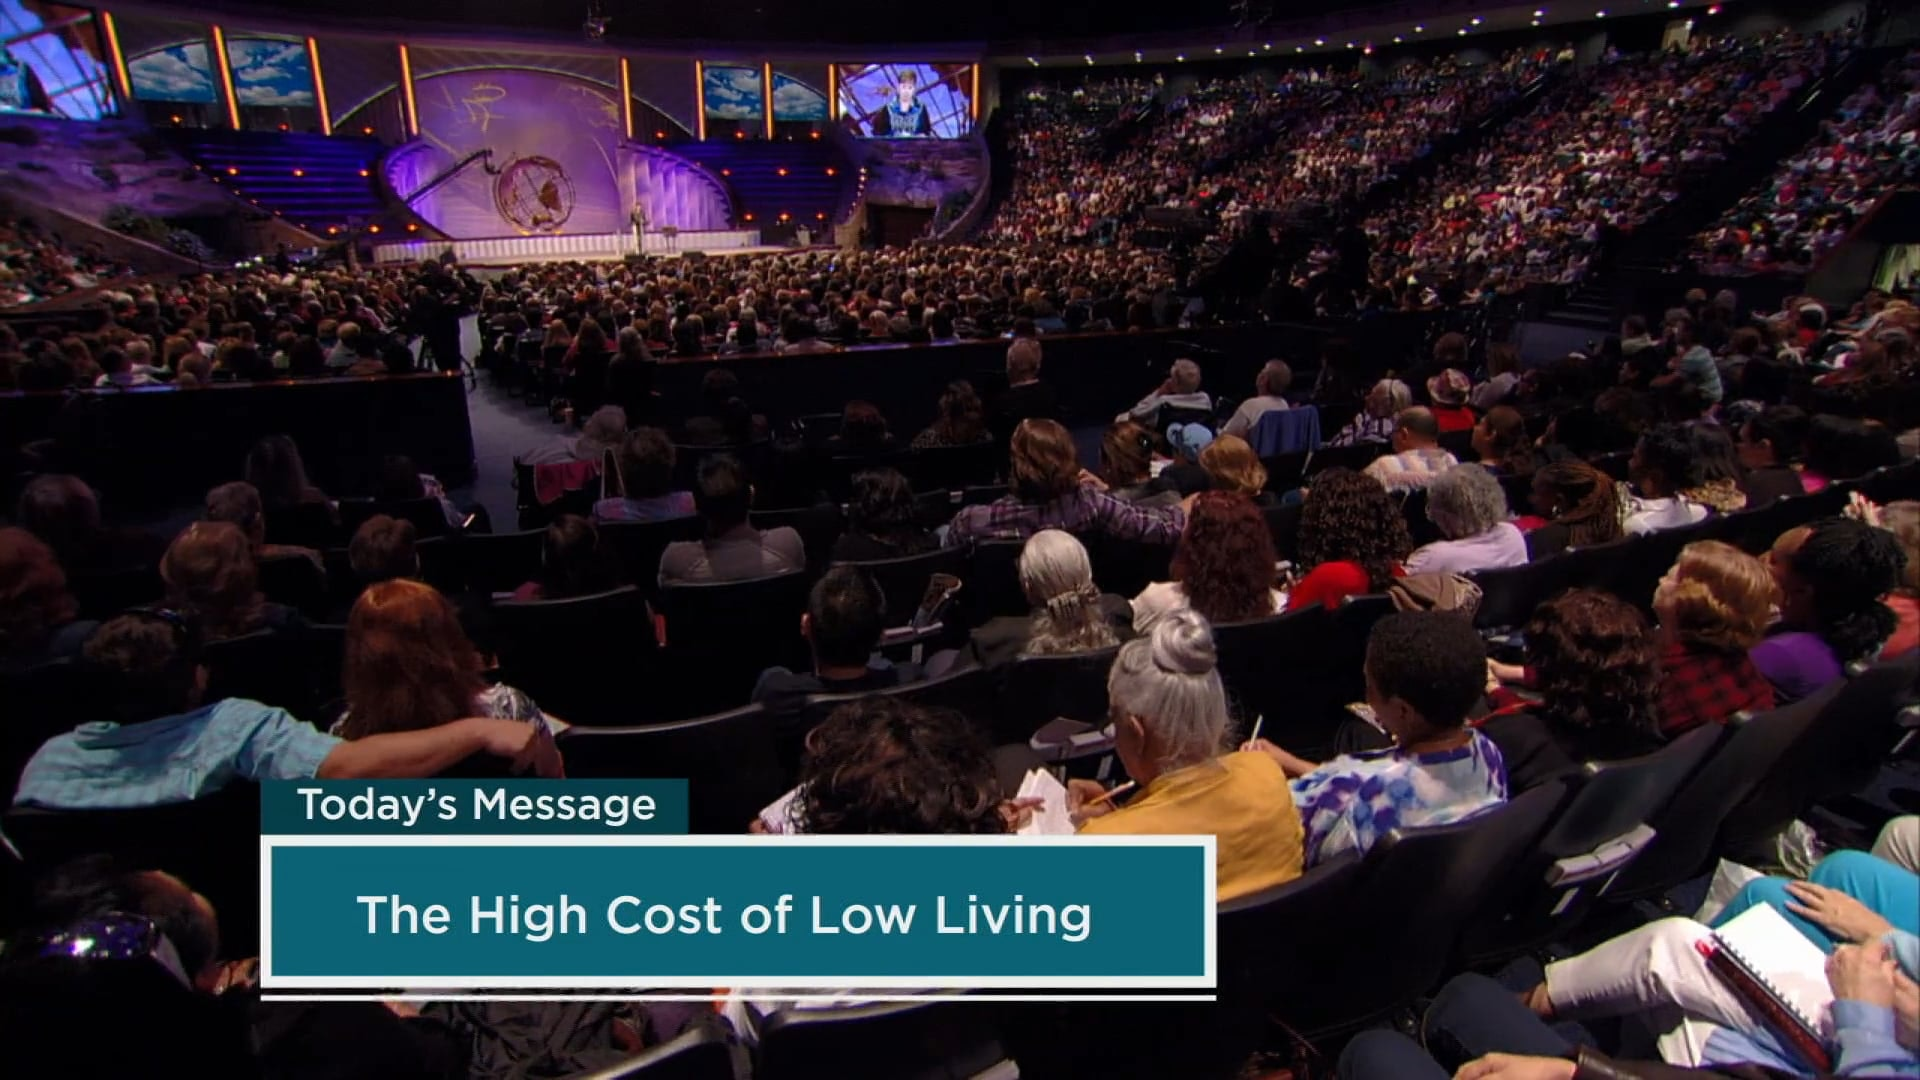 Watch The High Cost of Low Living